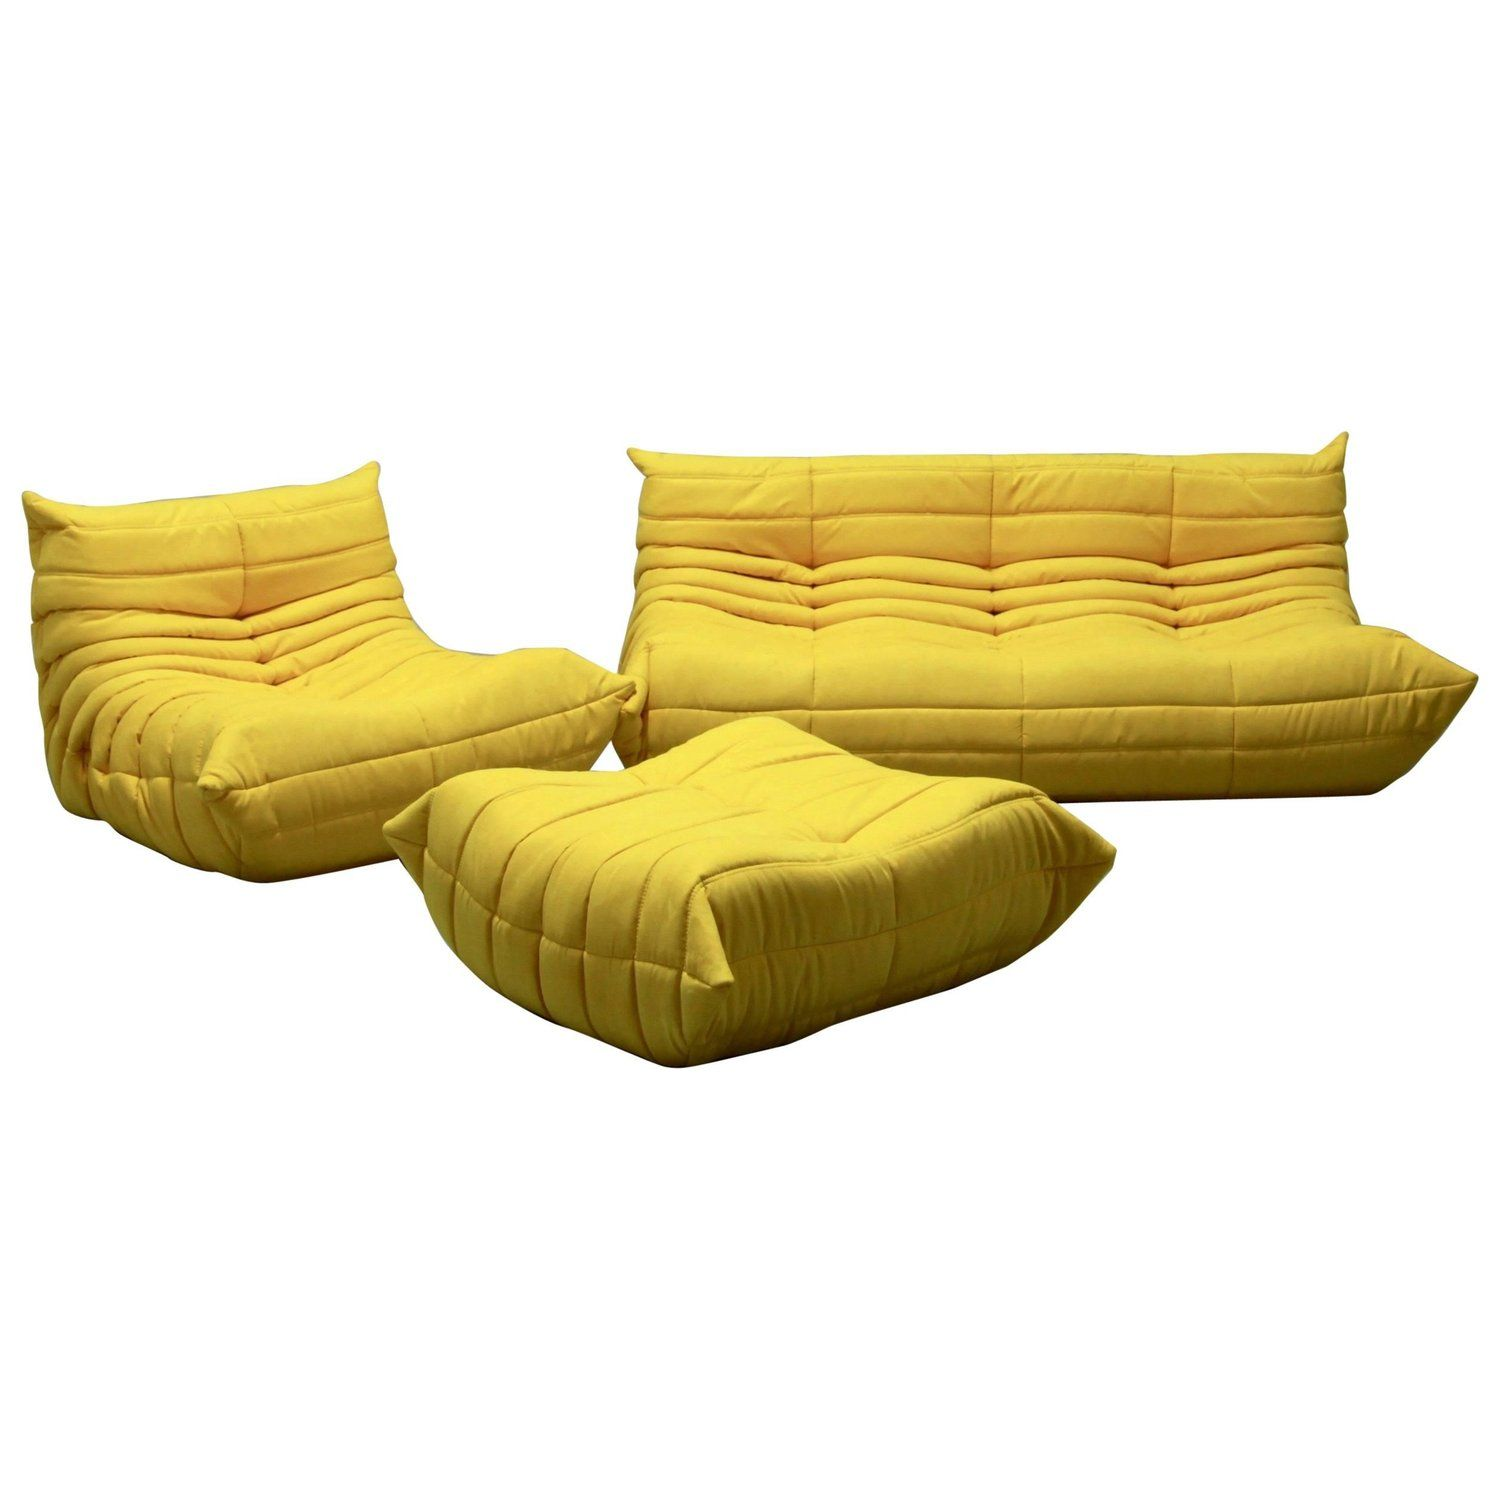 Vintage Yellow Microfibre Togo Sofa Set By Michel Ducaroy For Ligne